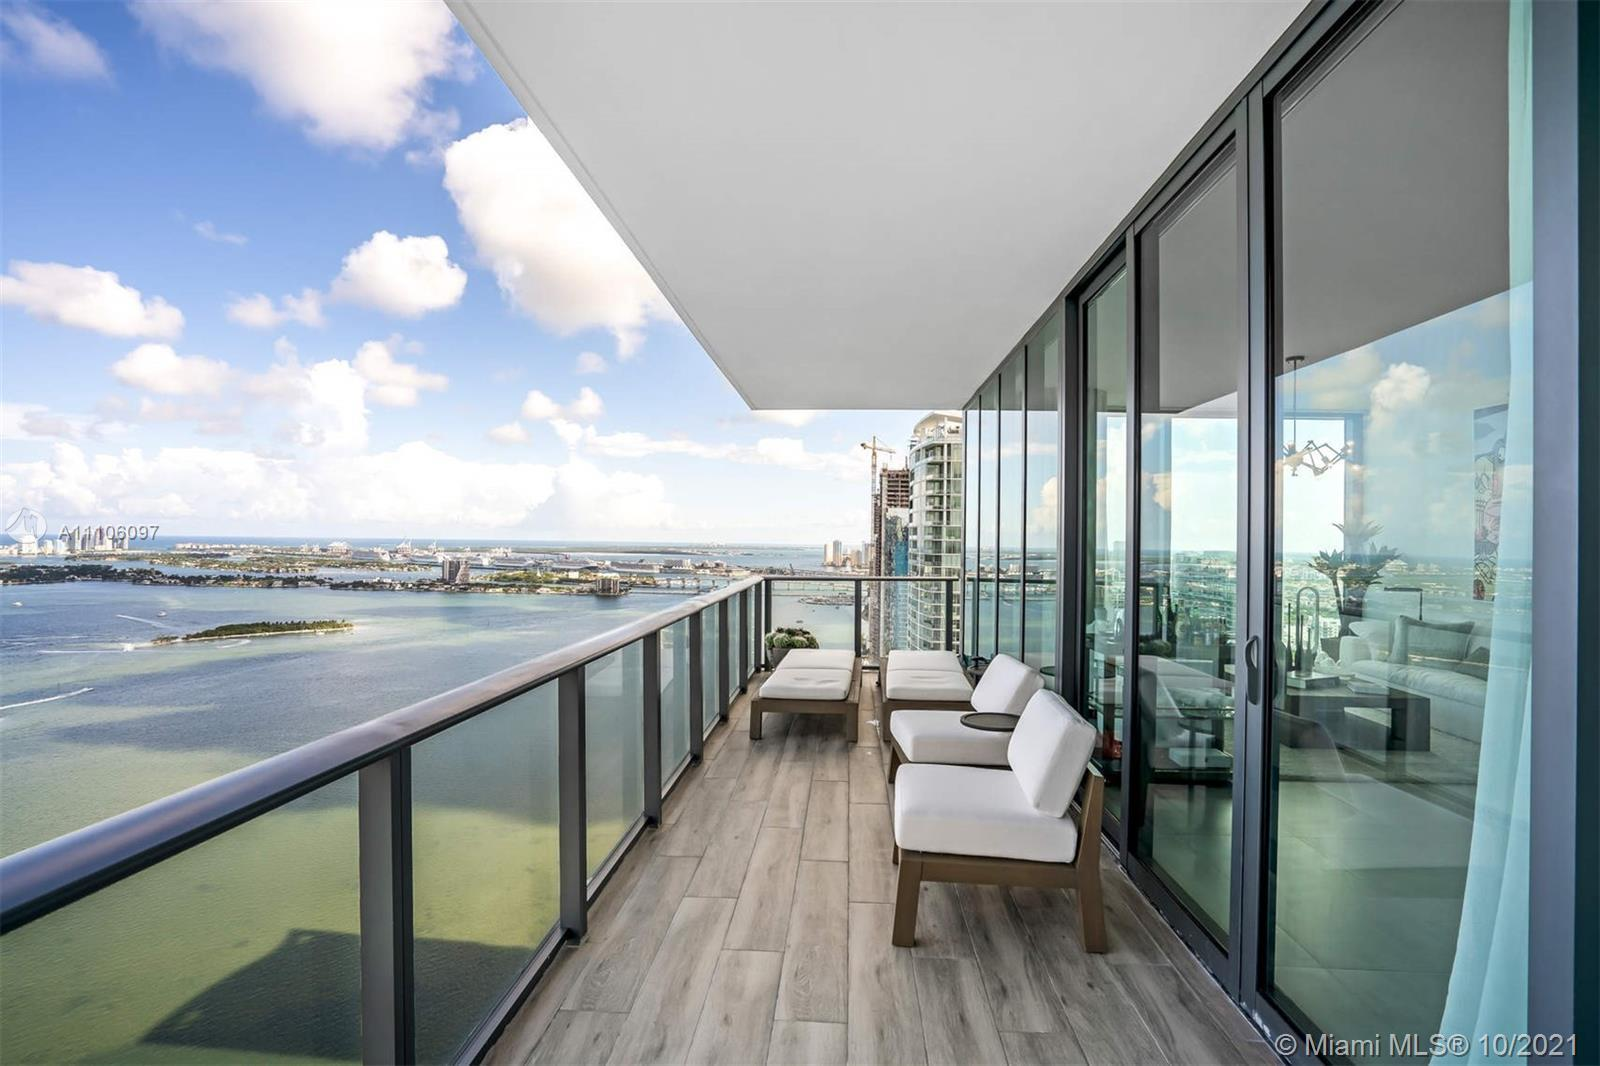 Welcome to Treehouse: where Miami's most exquisite views effortlessly combine with handpicked design